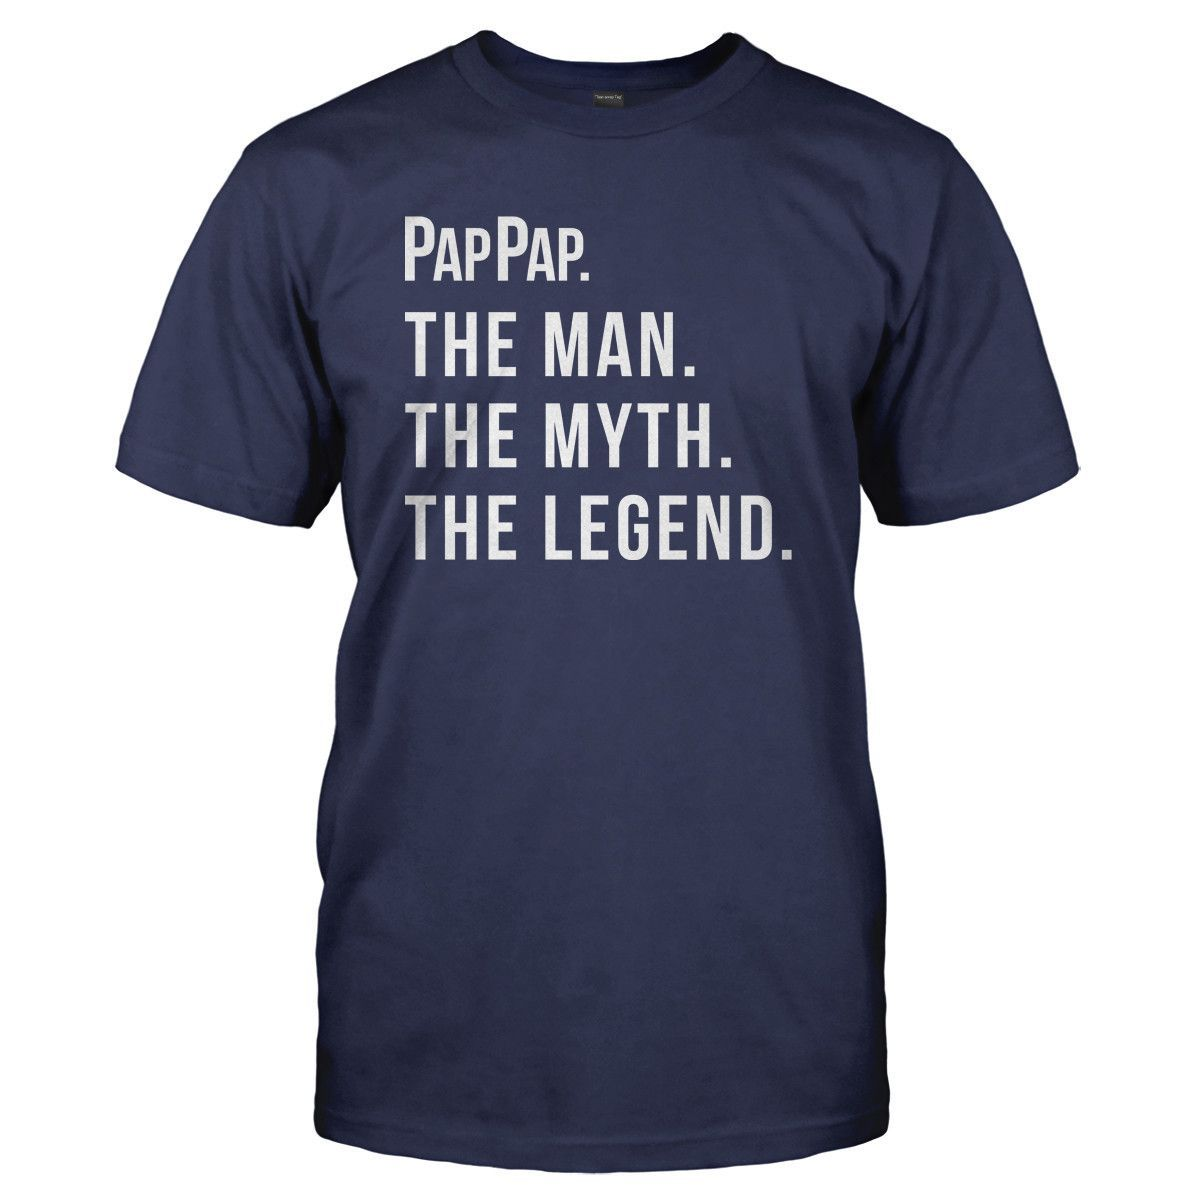 PapPap. The Man. The Myth. The Legend.